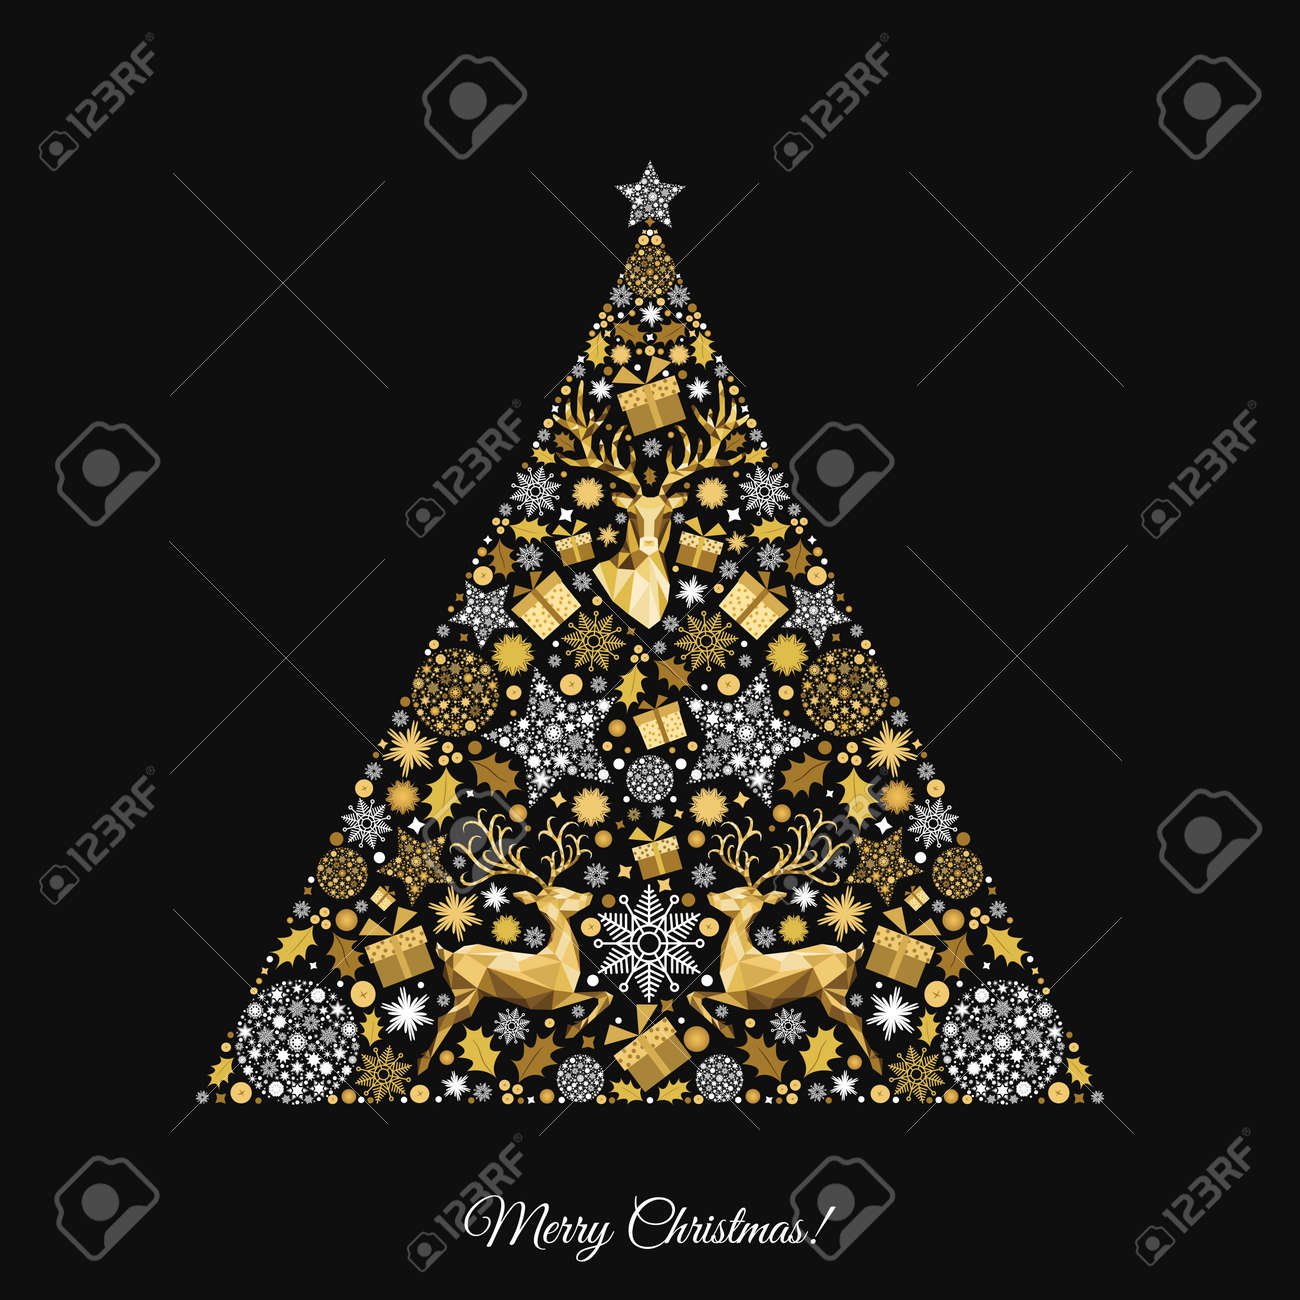 Christmas Tree Gold Pattern Golden White Decoration Happy New Year Black Background